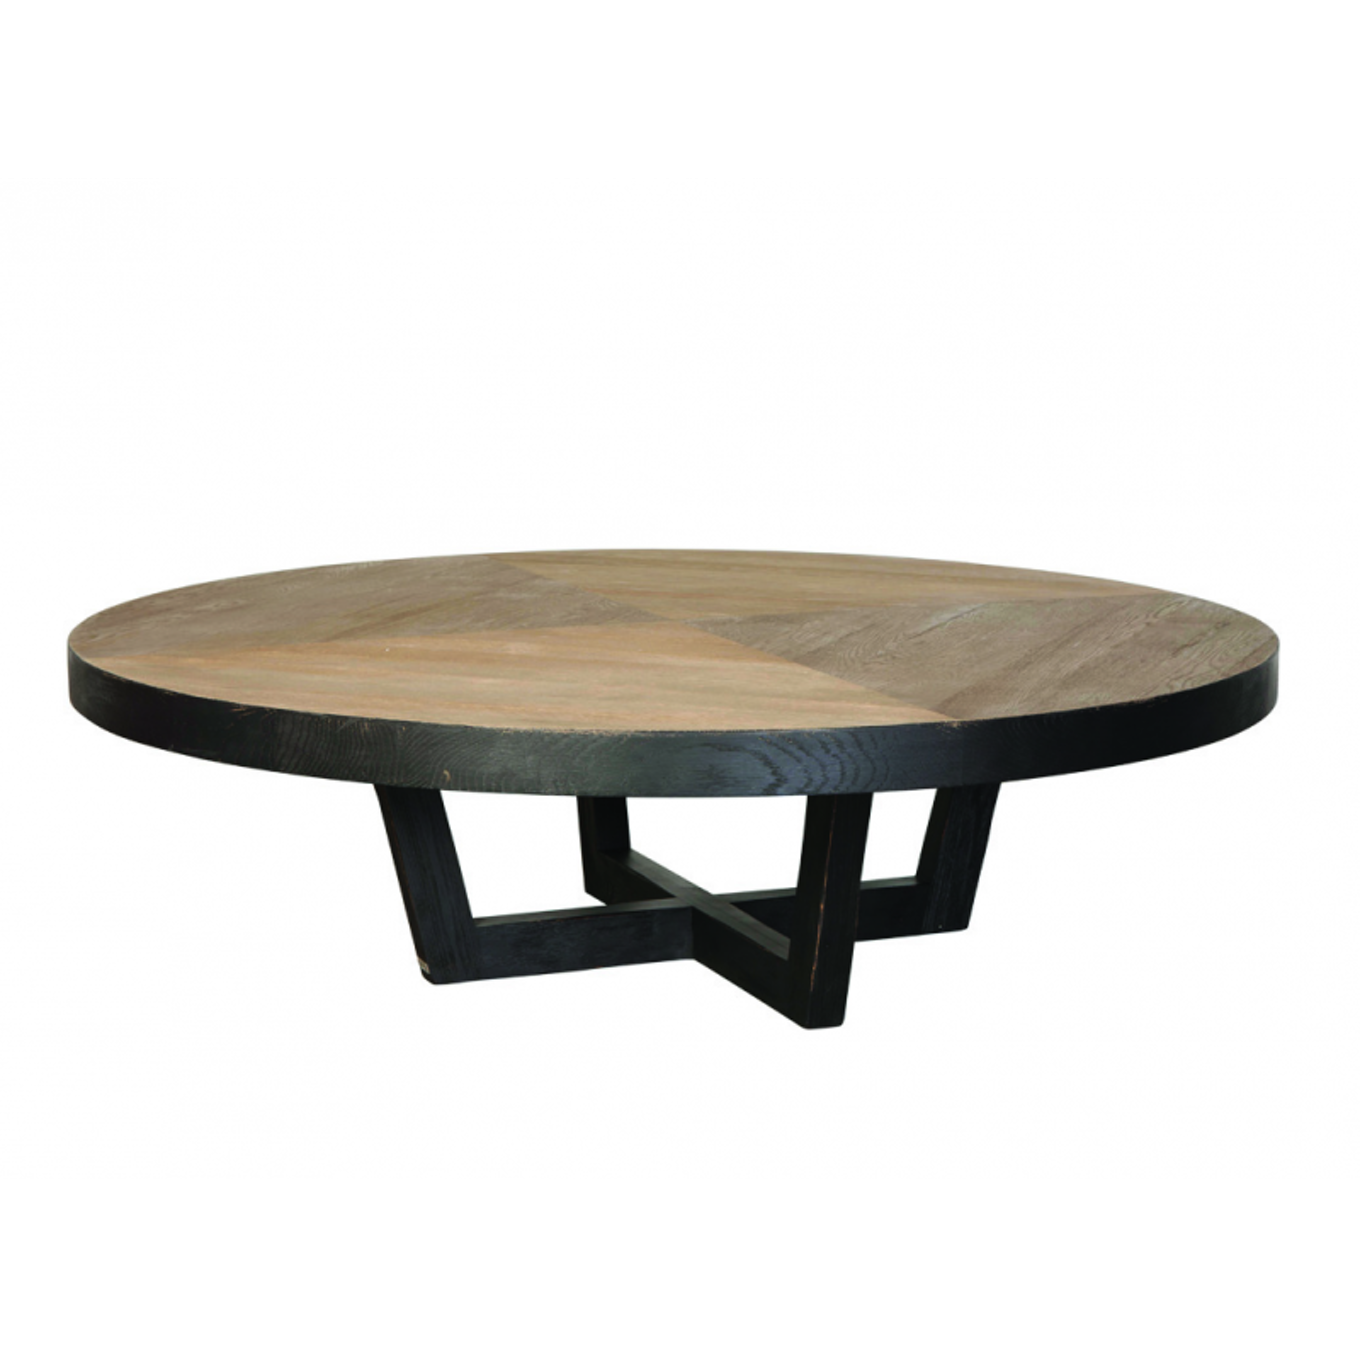 ikea table basse ronde fabulous table basse salon ikea ikea table basse salon table basse ikea. Black Bedroom Furniture Sets. Home Design Ideas